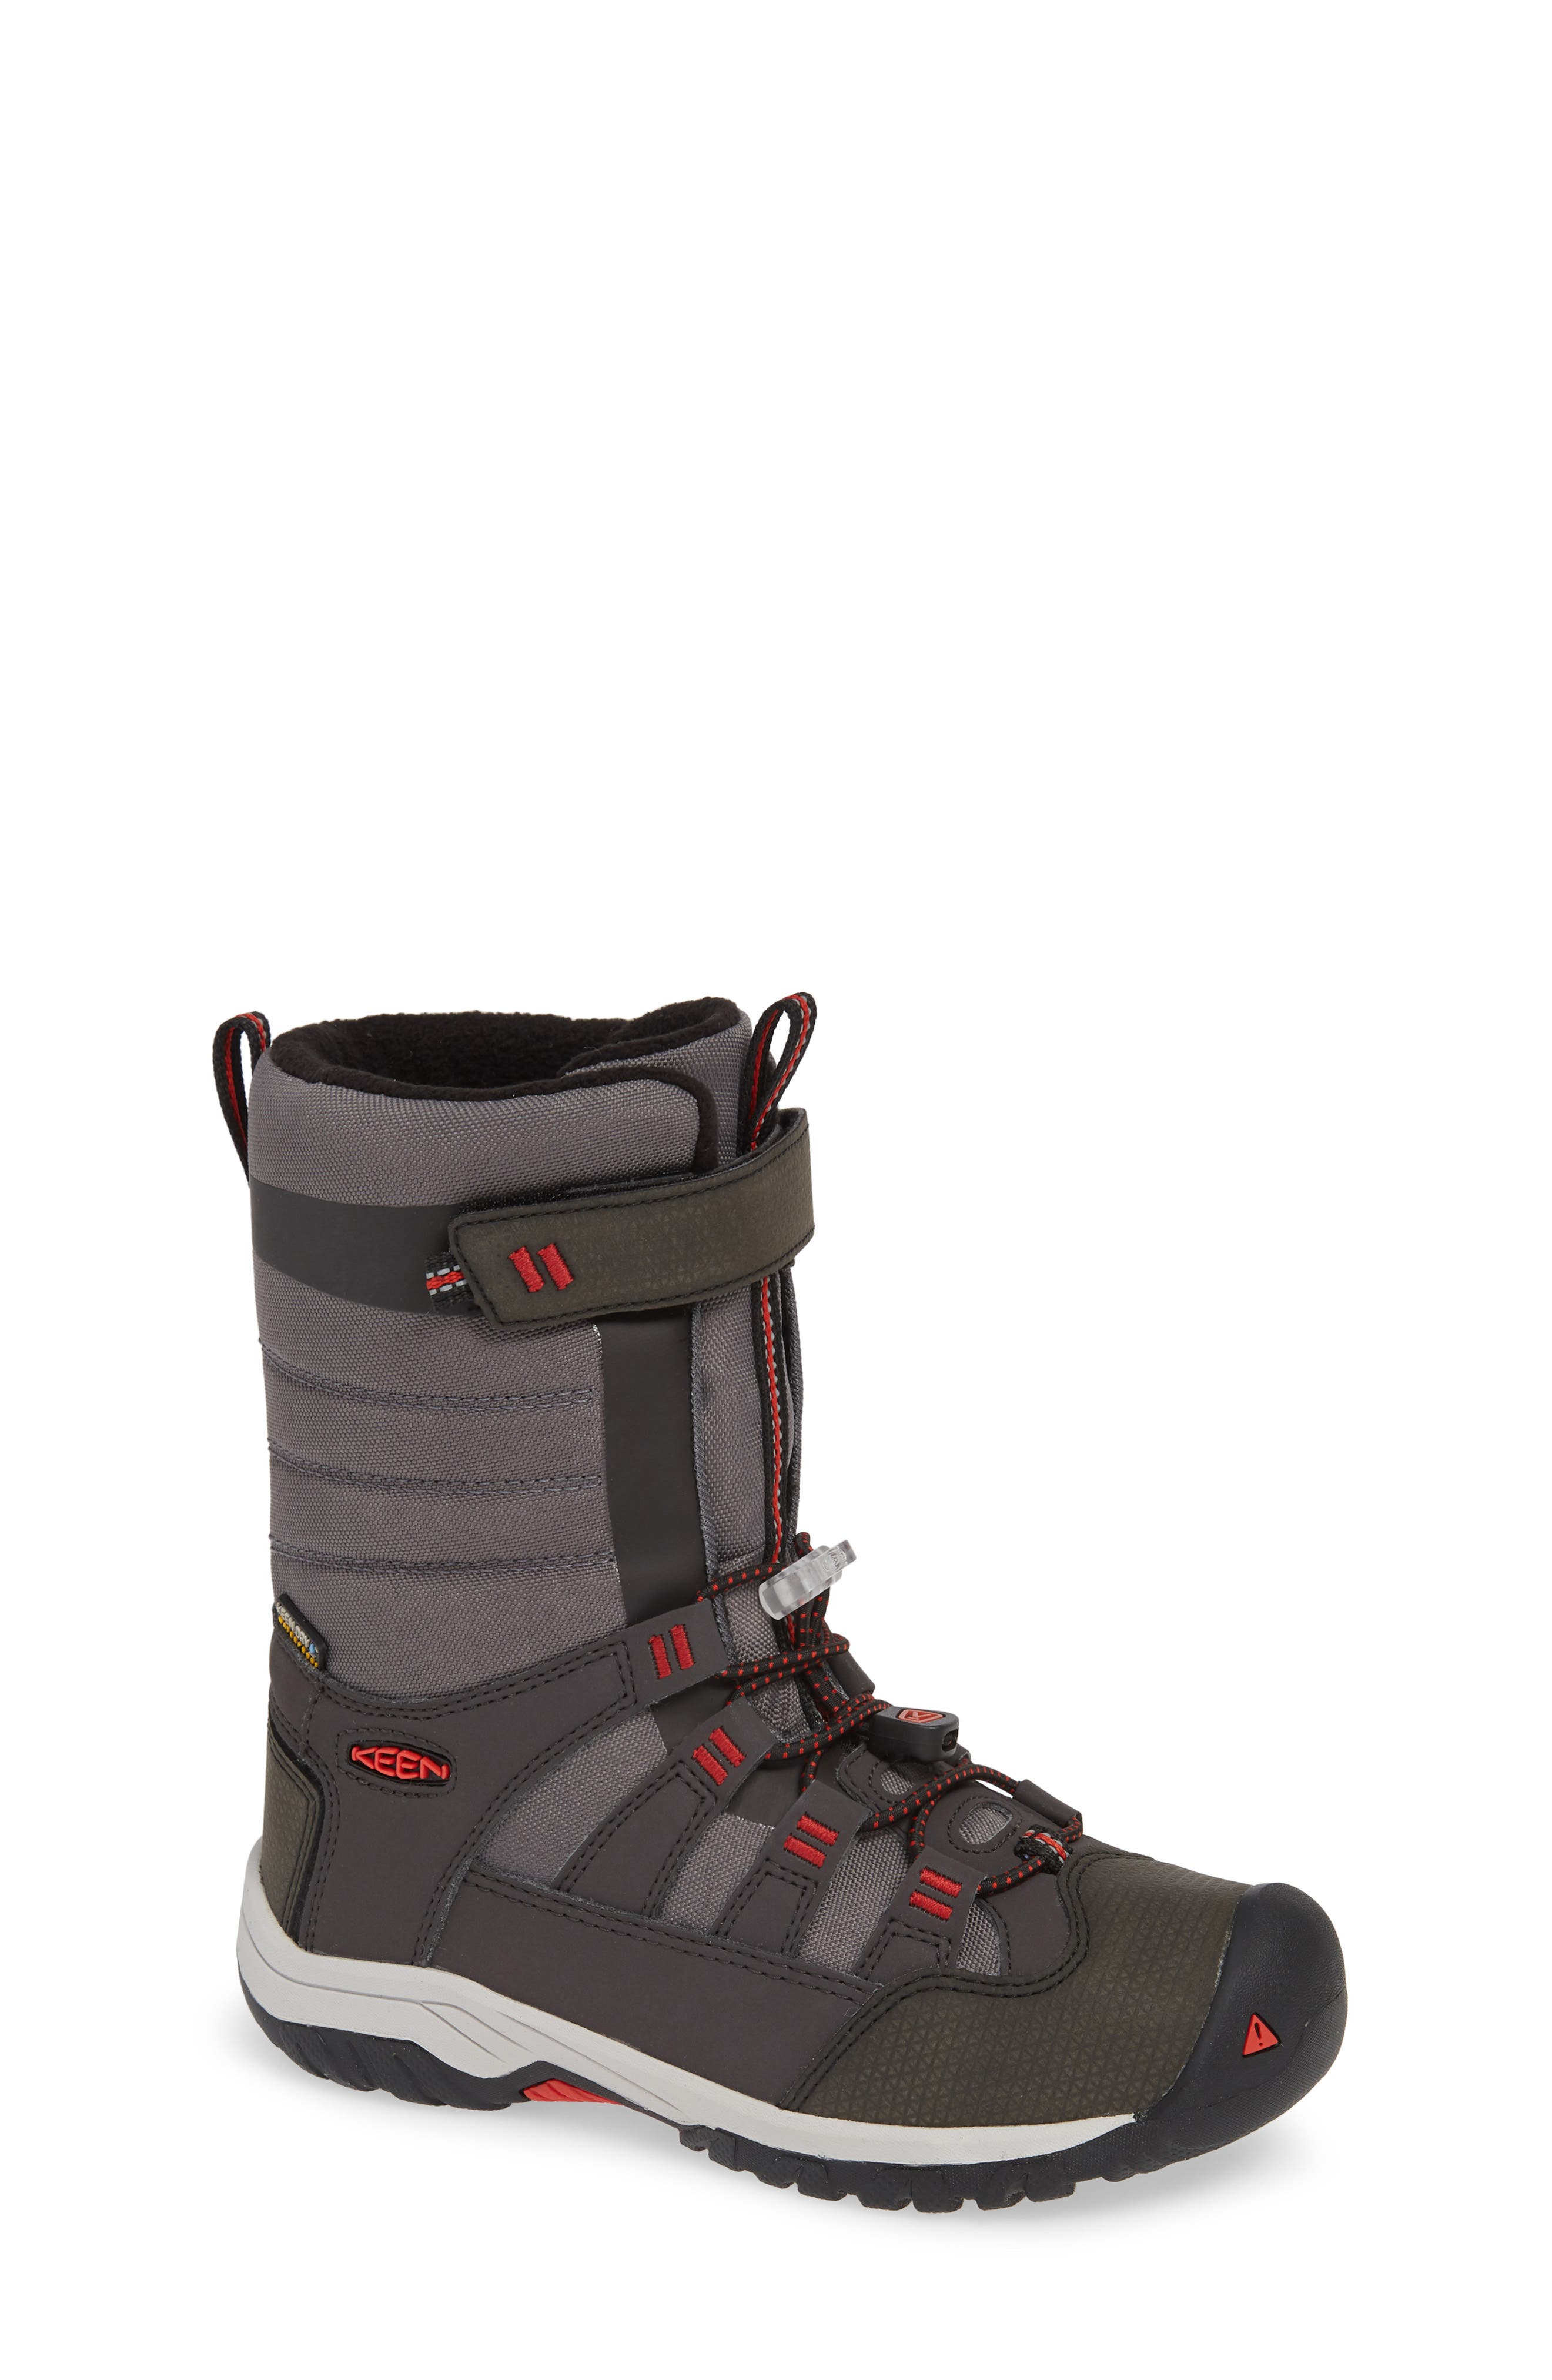 Winterport Neo Waterproof Insulated Boot, Main, color, MAGNET/ FIREY RED